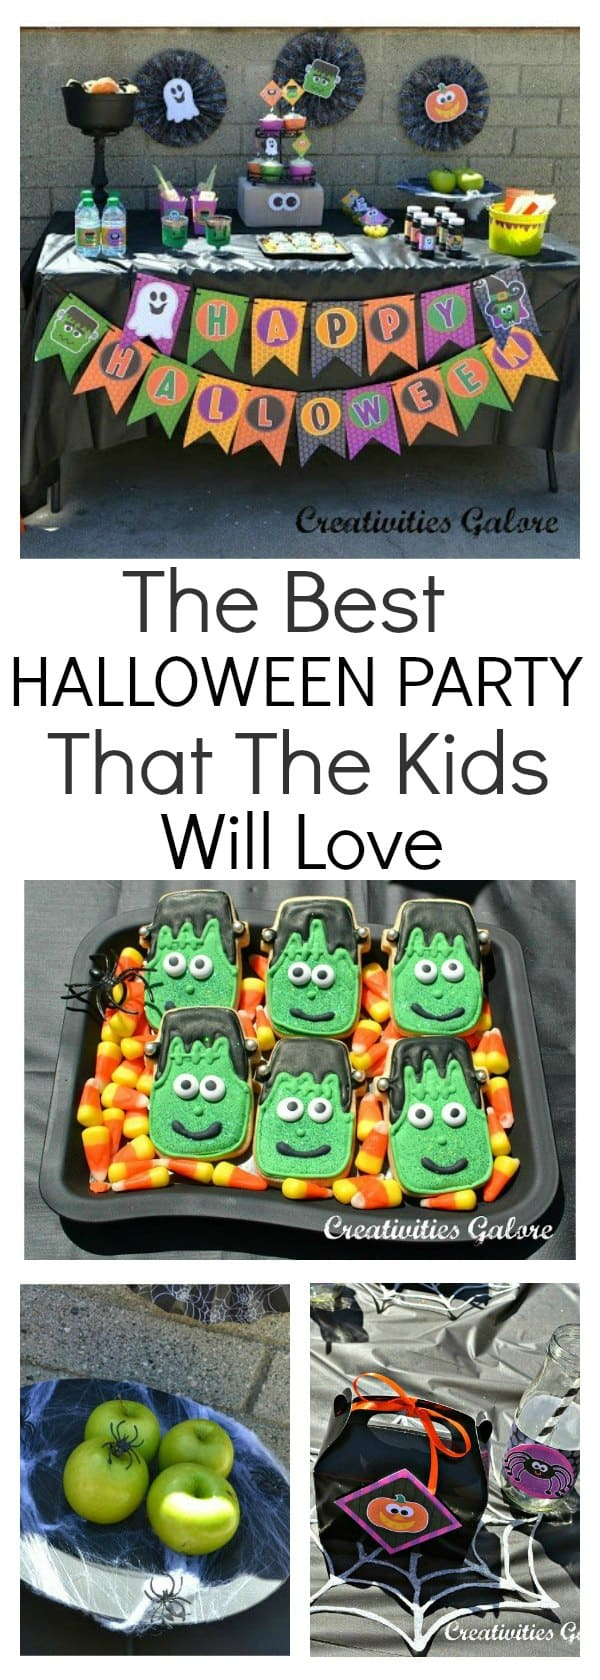 Looking for some Halloween party ideas for the kids? This party has it all. Awesome Halloween decorations, food, and it's as creepy as they come. This is a party that the kids will love with some craft ideas to keep them entertained.